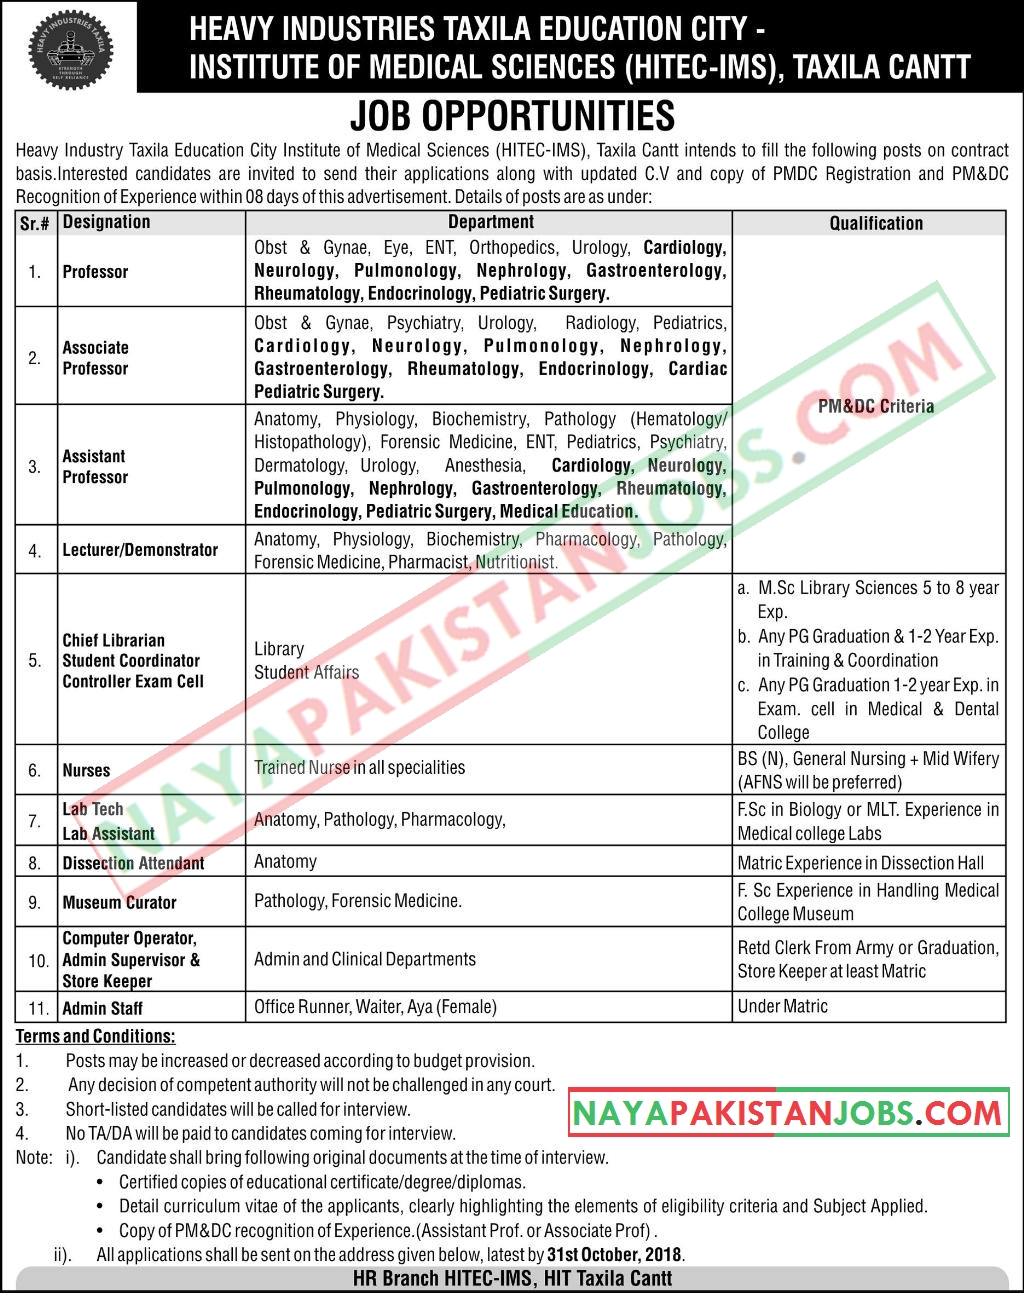 Latest Vacancies Announced in Heavy Industries Taxila Education City 24 October 2018 - Naya Pakistan